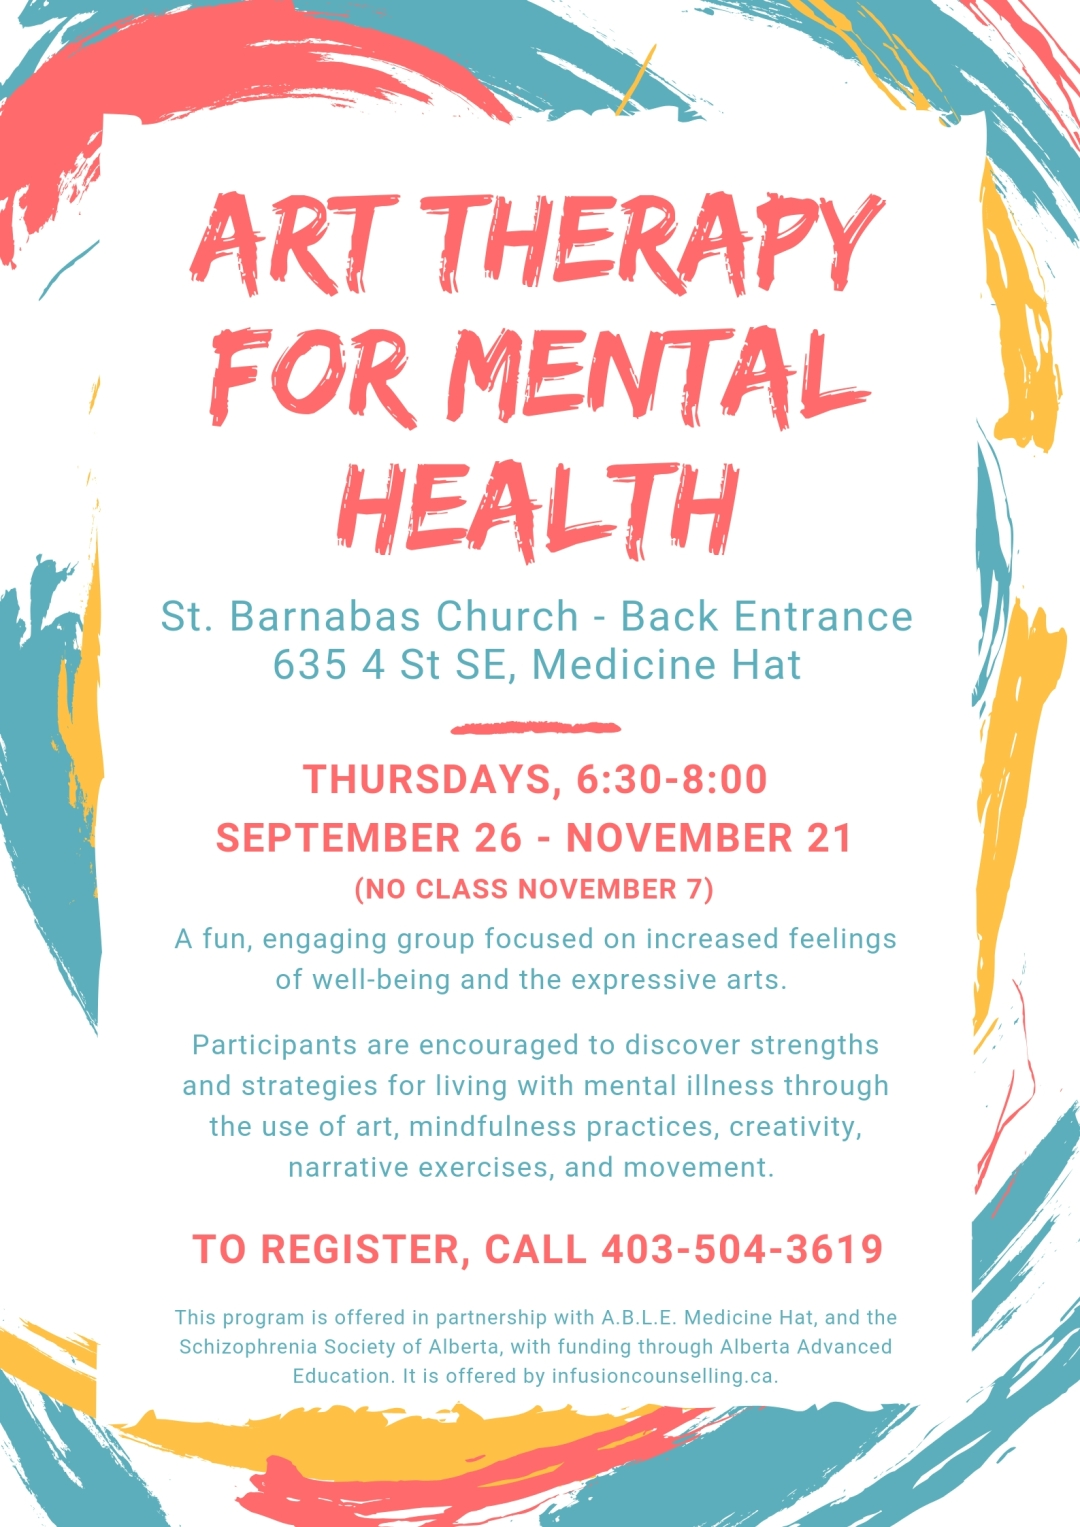 Art Therapy for Mental Health - Fall 2019